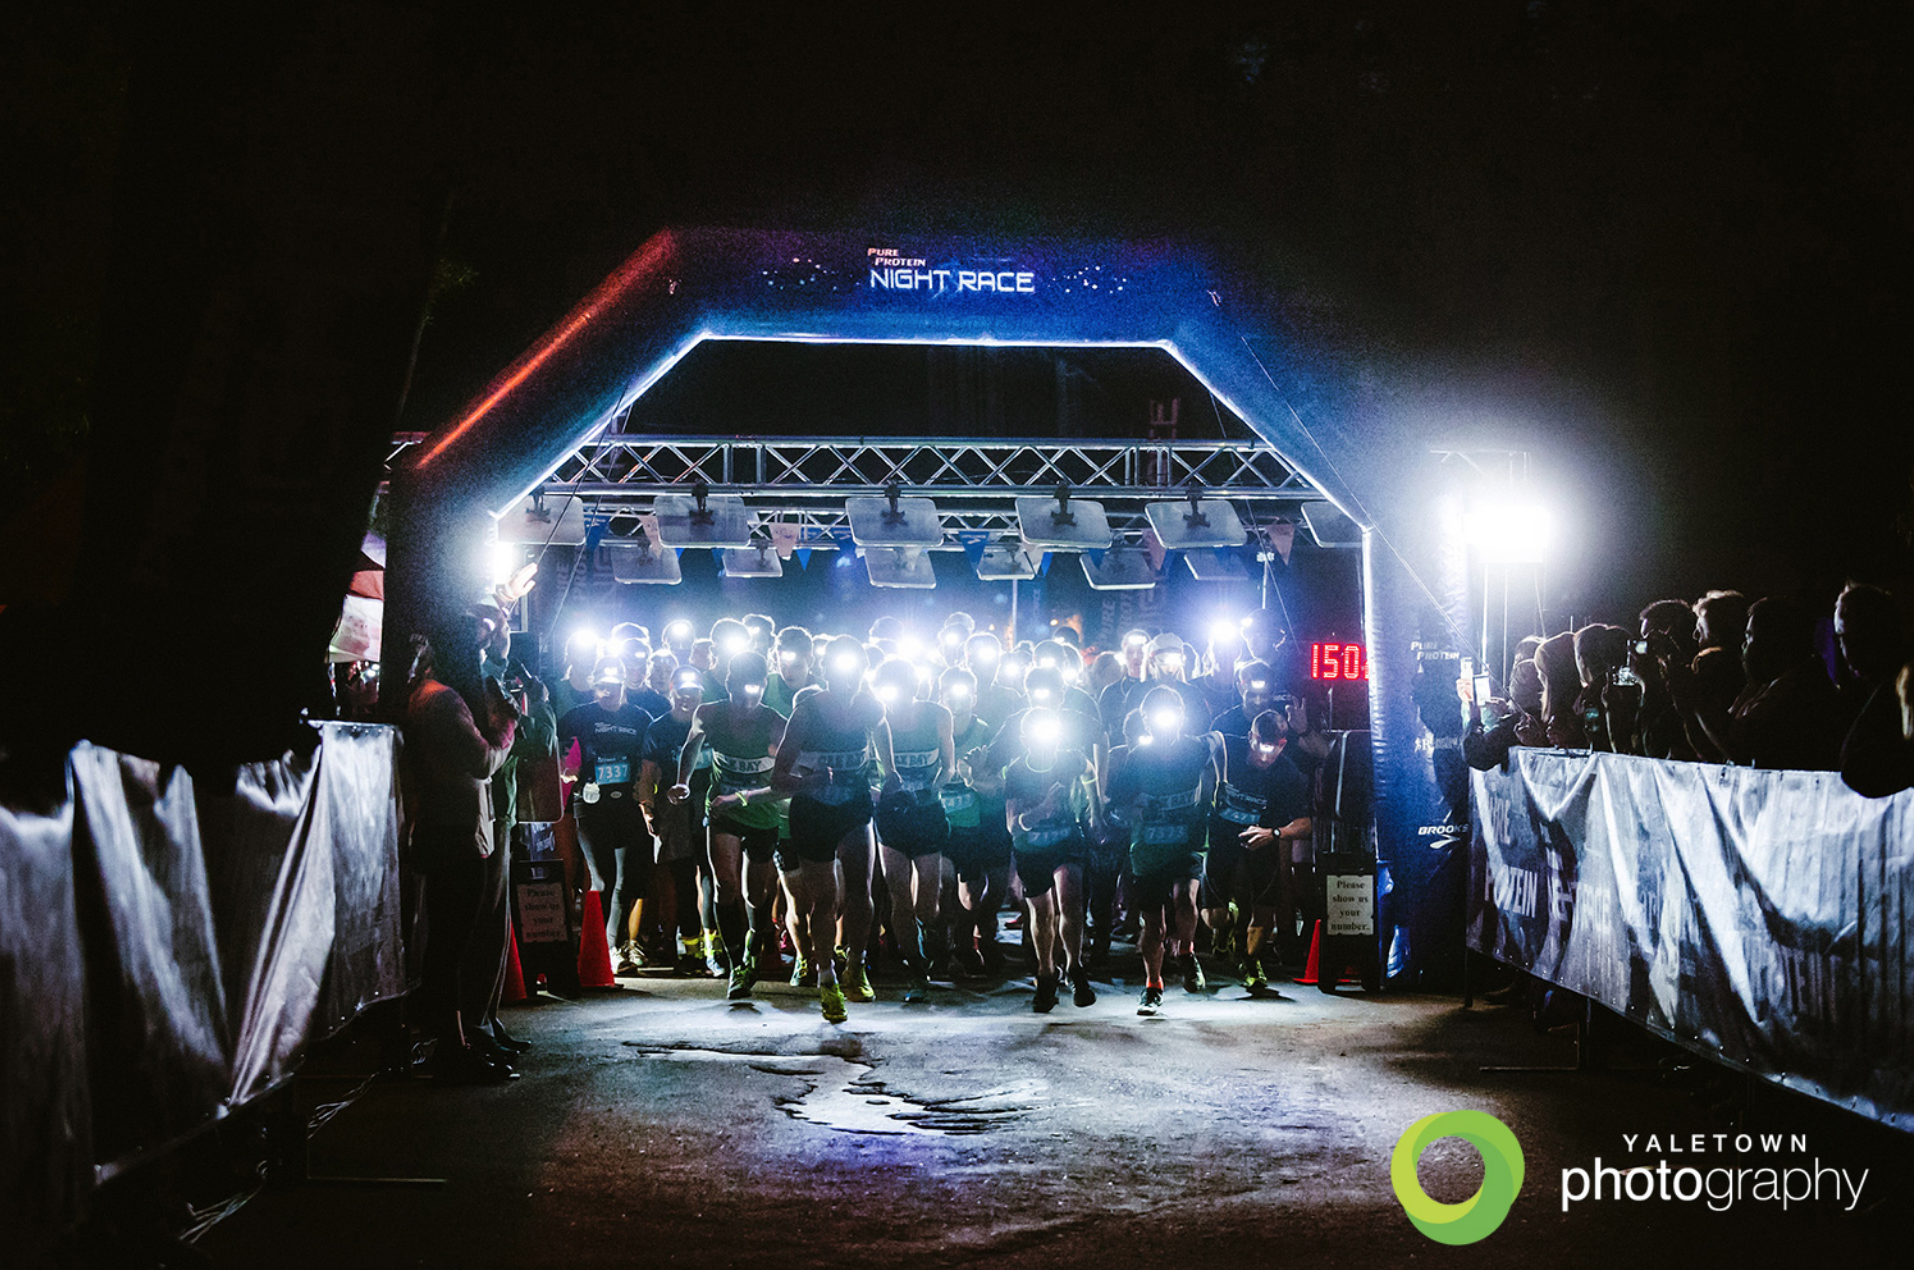 Nightrace_Vancouver_stanley-park-brockton-lighthouse-night-photography-running-racing-pure-protein-brooks-vancouver-event-photographer-sport-photography-photo